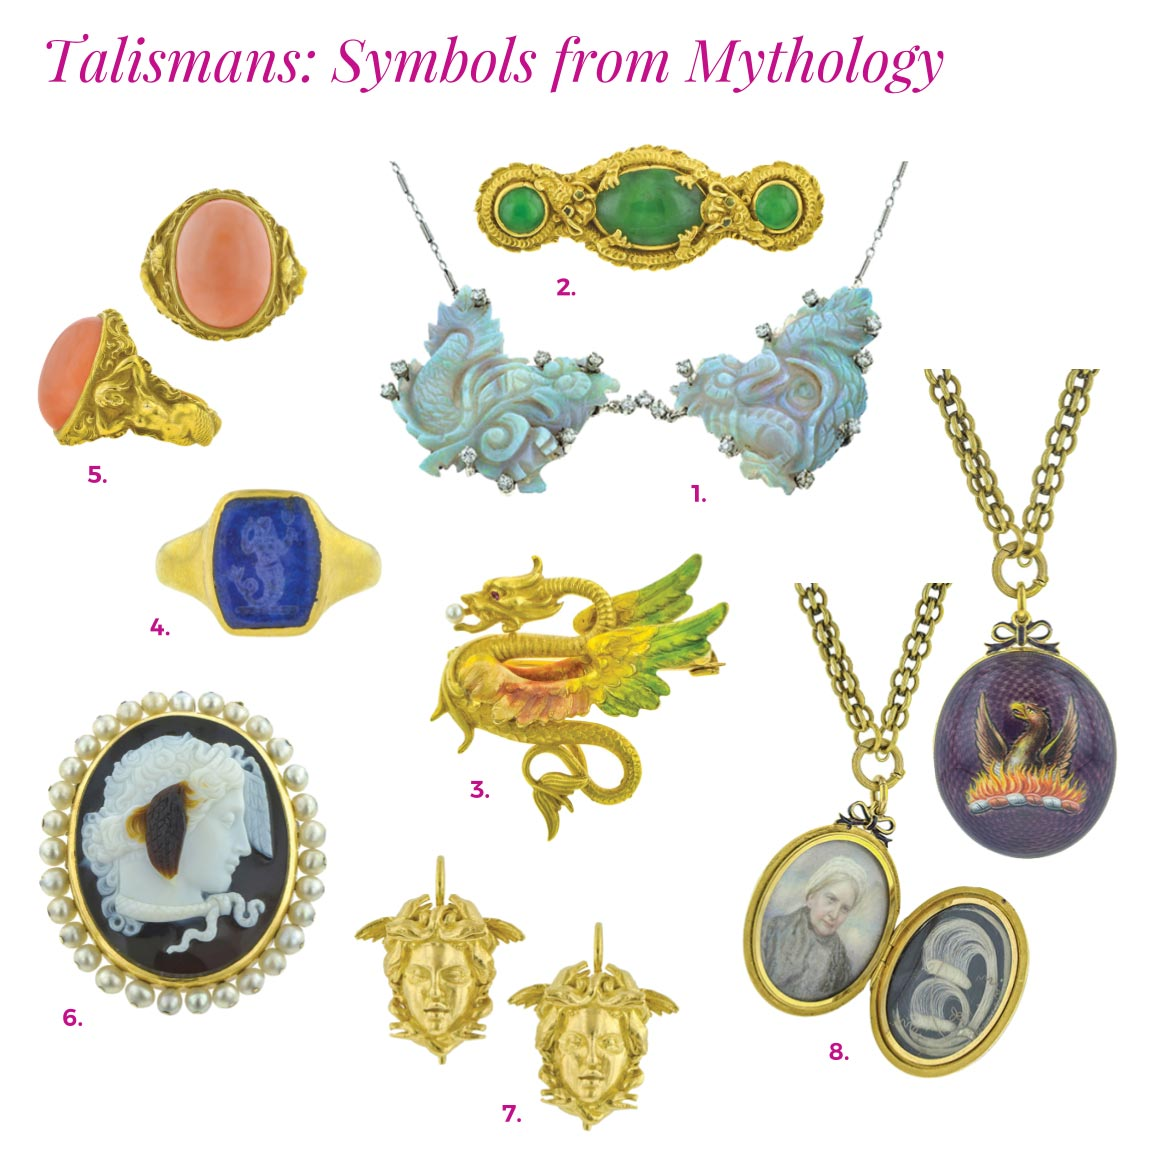 doyle and doyle mythological talismans catalog vintage dragon mermaid jewelry